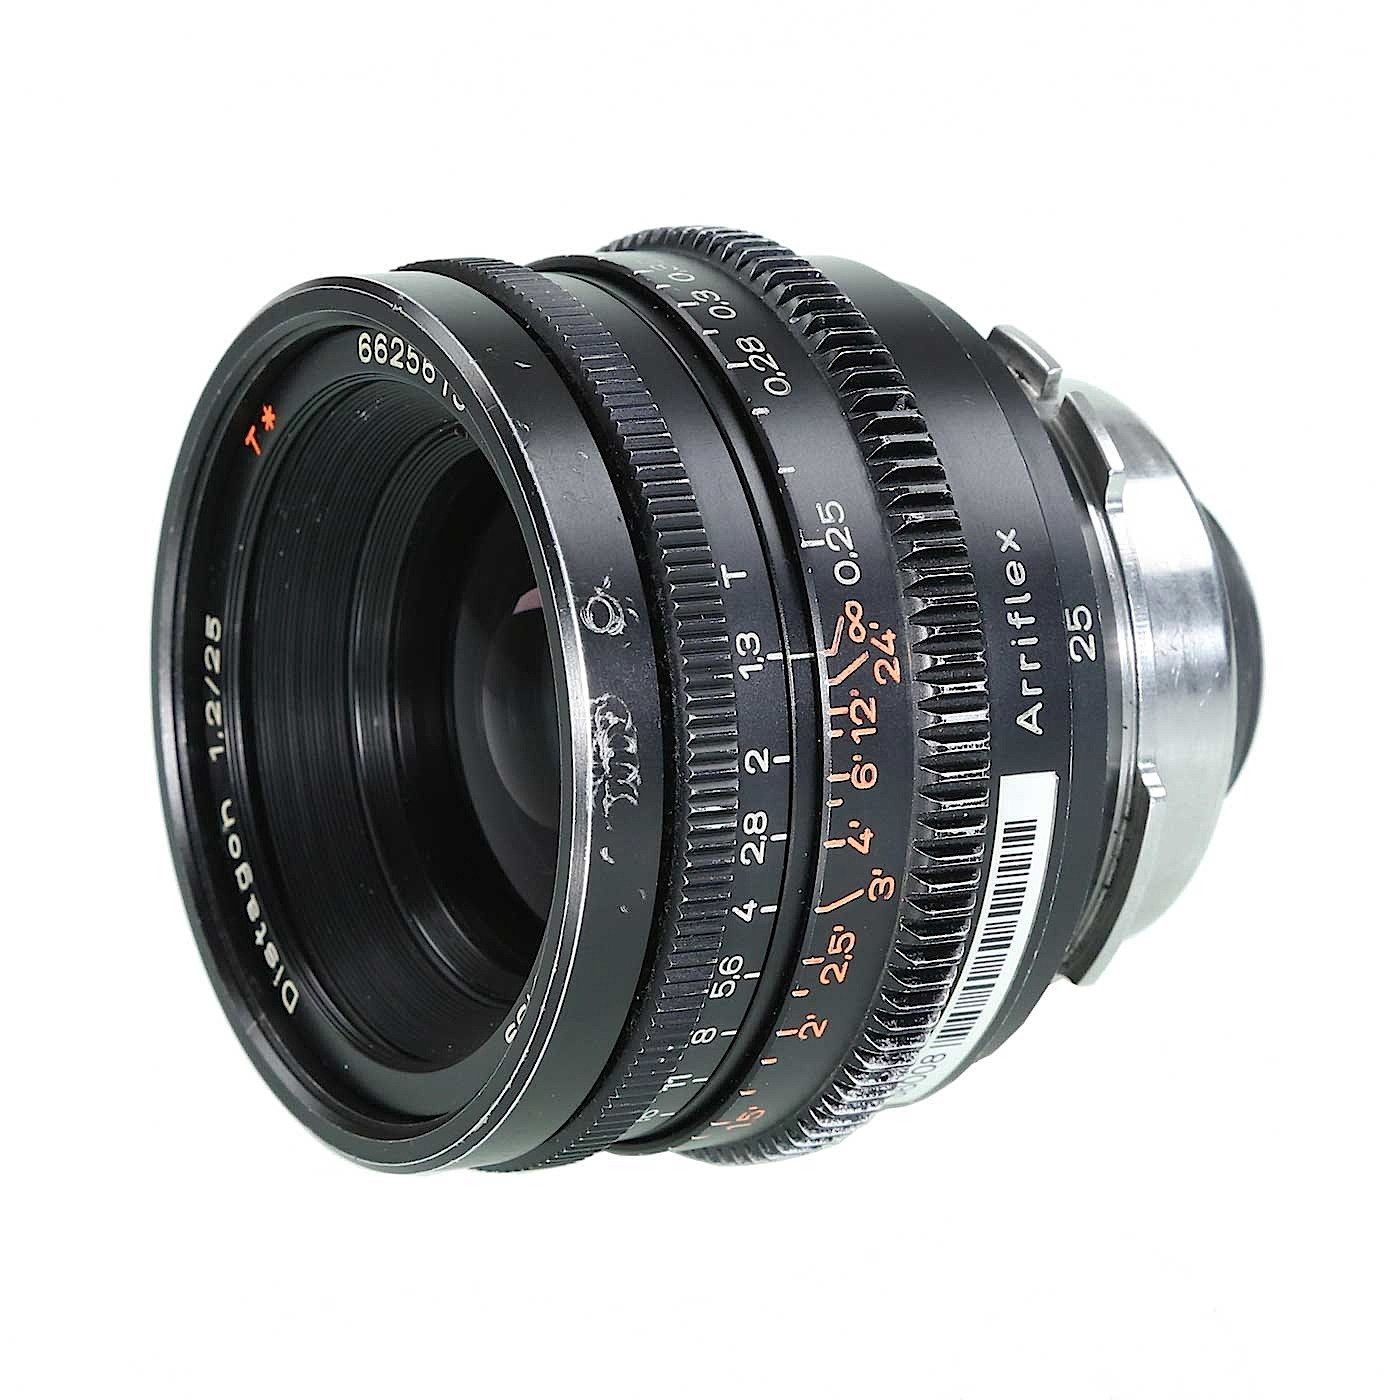 Zeiss 25mm T1.3 (Superspeed) Prime Lens